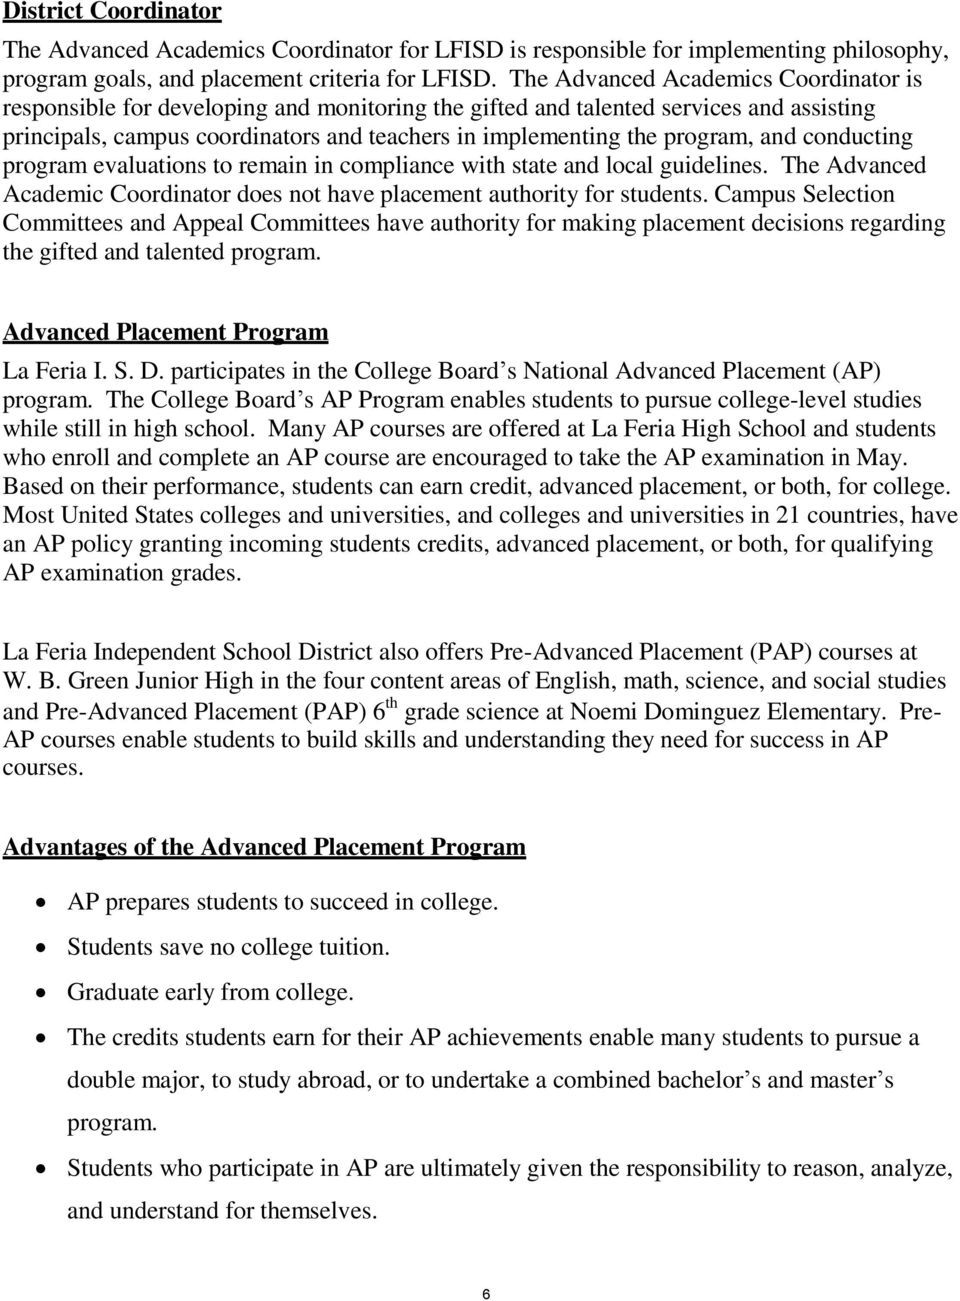 program, and conducting program evaluations to remain in compliance with state and local guidelines. The Advanced Academic Coordinator does not have placement authority for students.